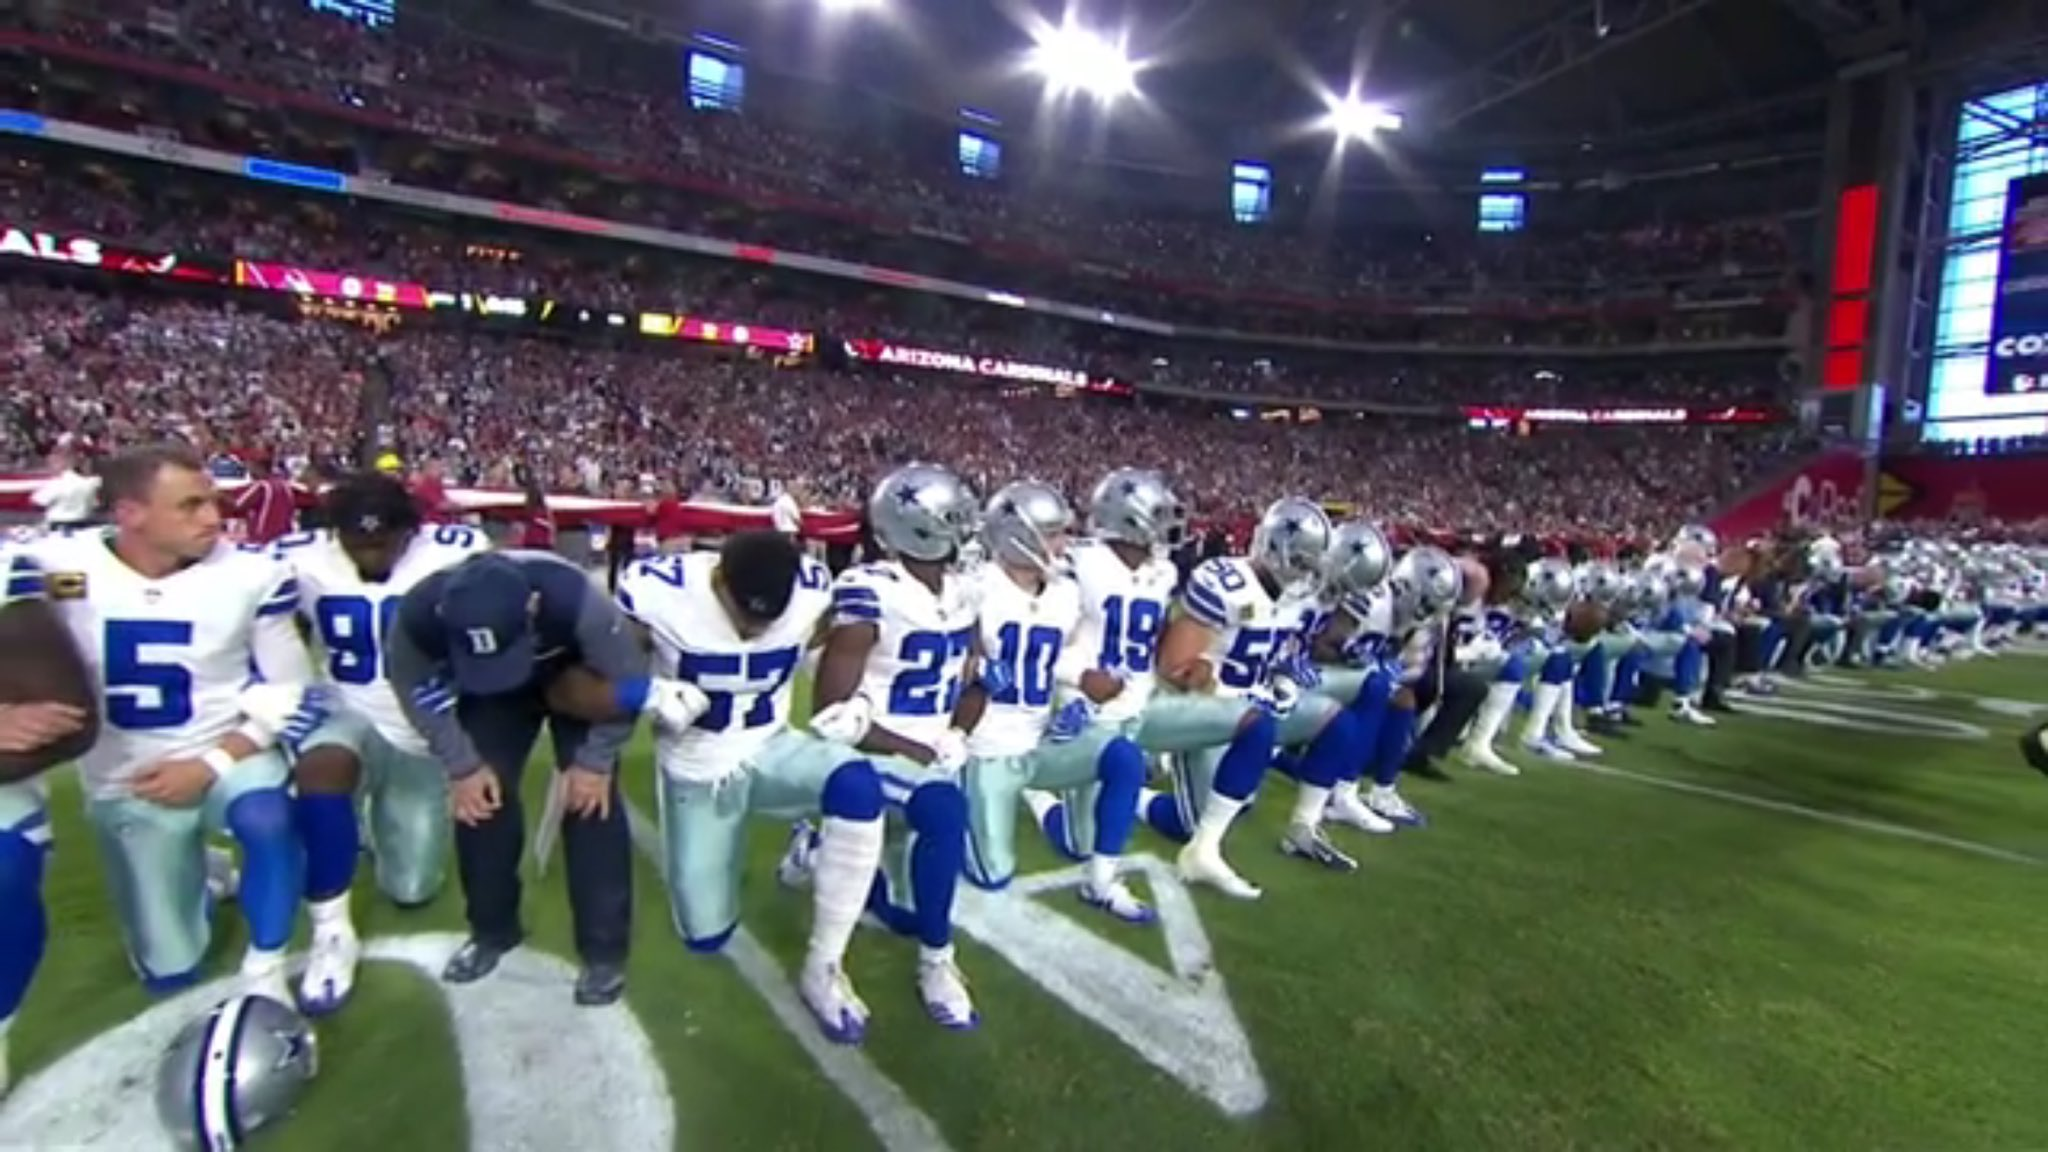 The entire Cowboys team kneeled together -- *before* the anthem -- to make a statement about unity https://t.co/ZV9W8PpotE